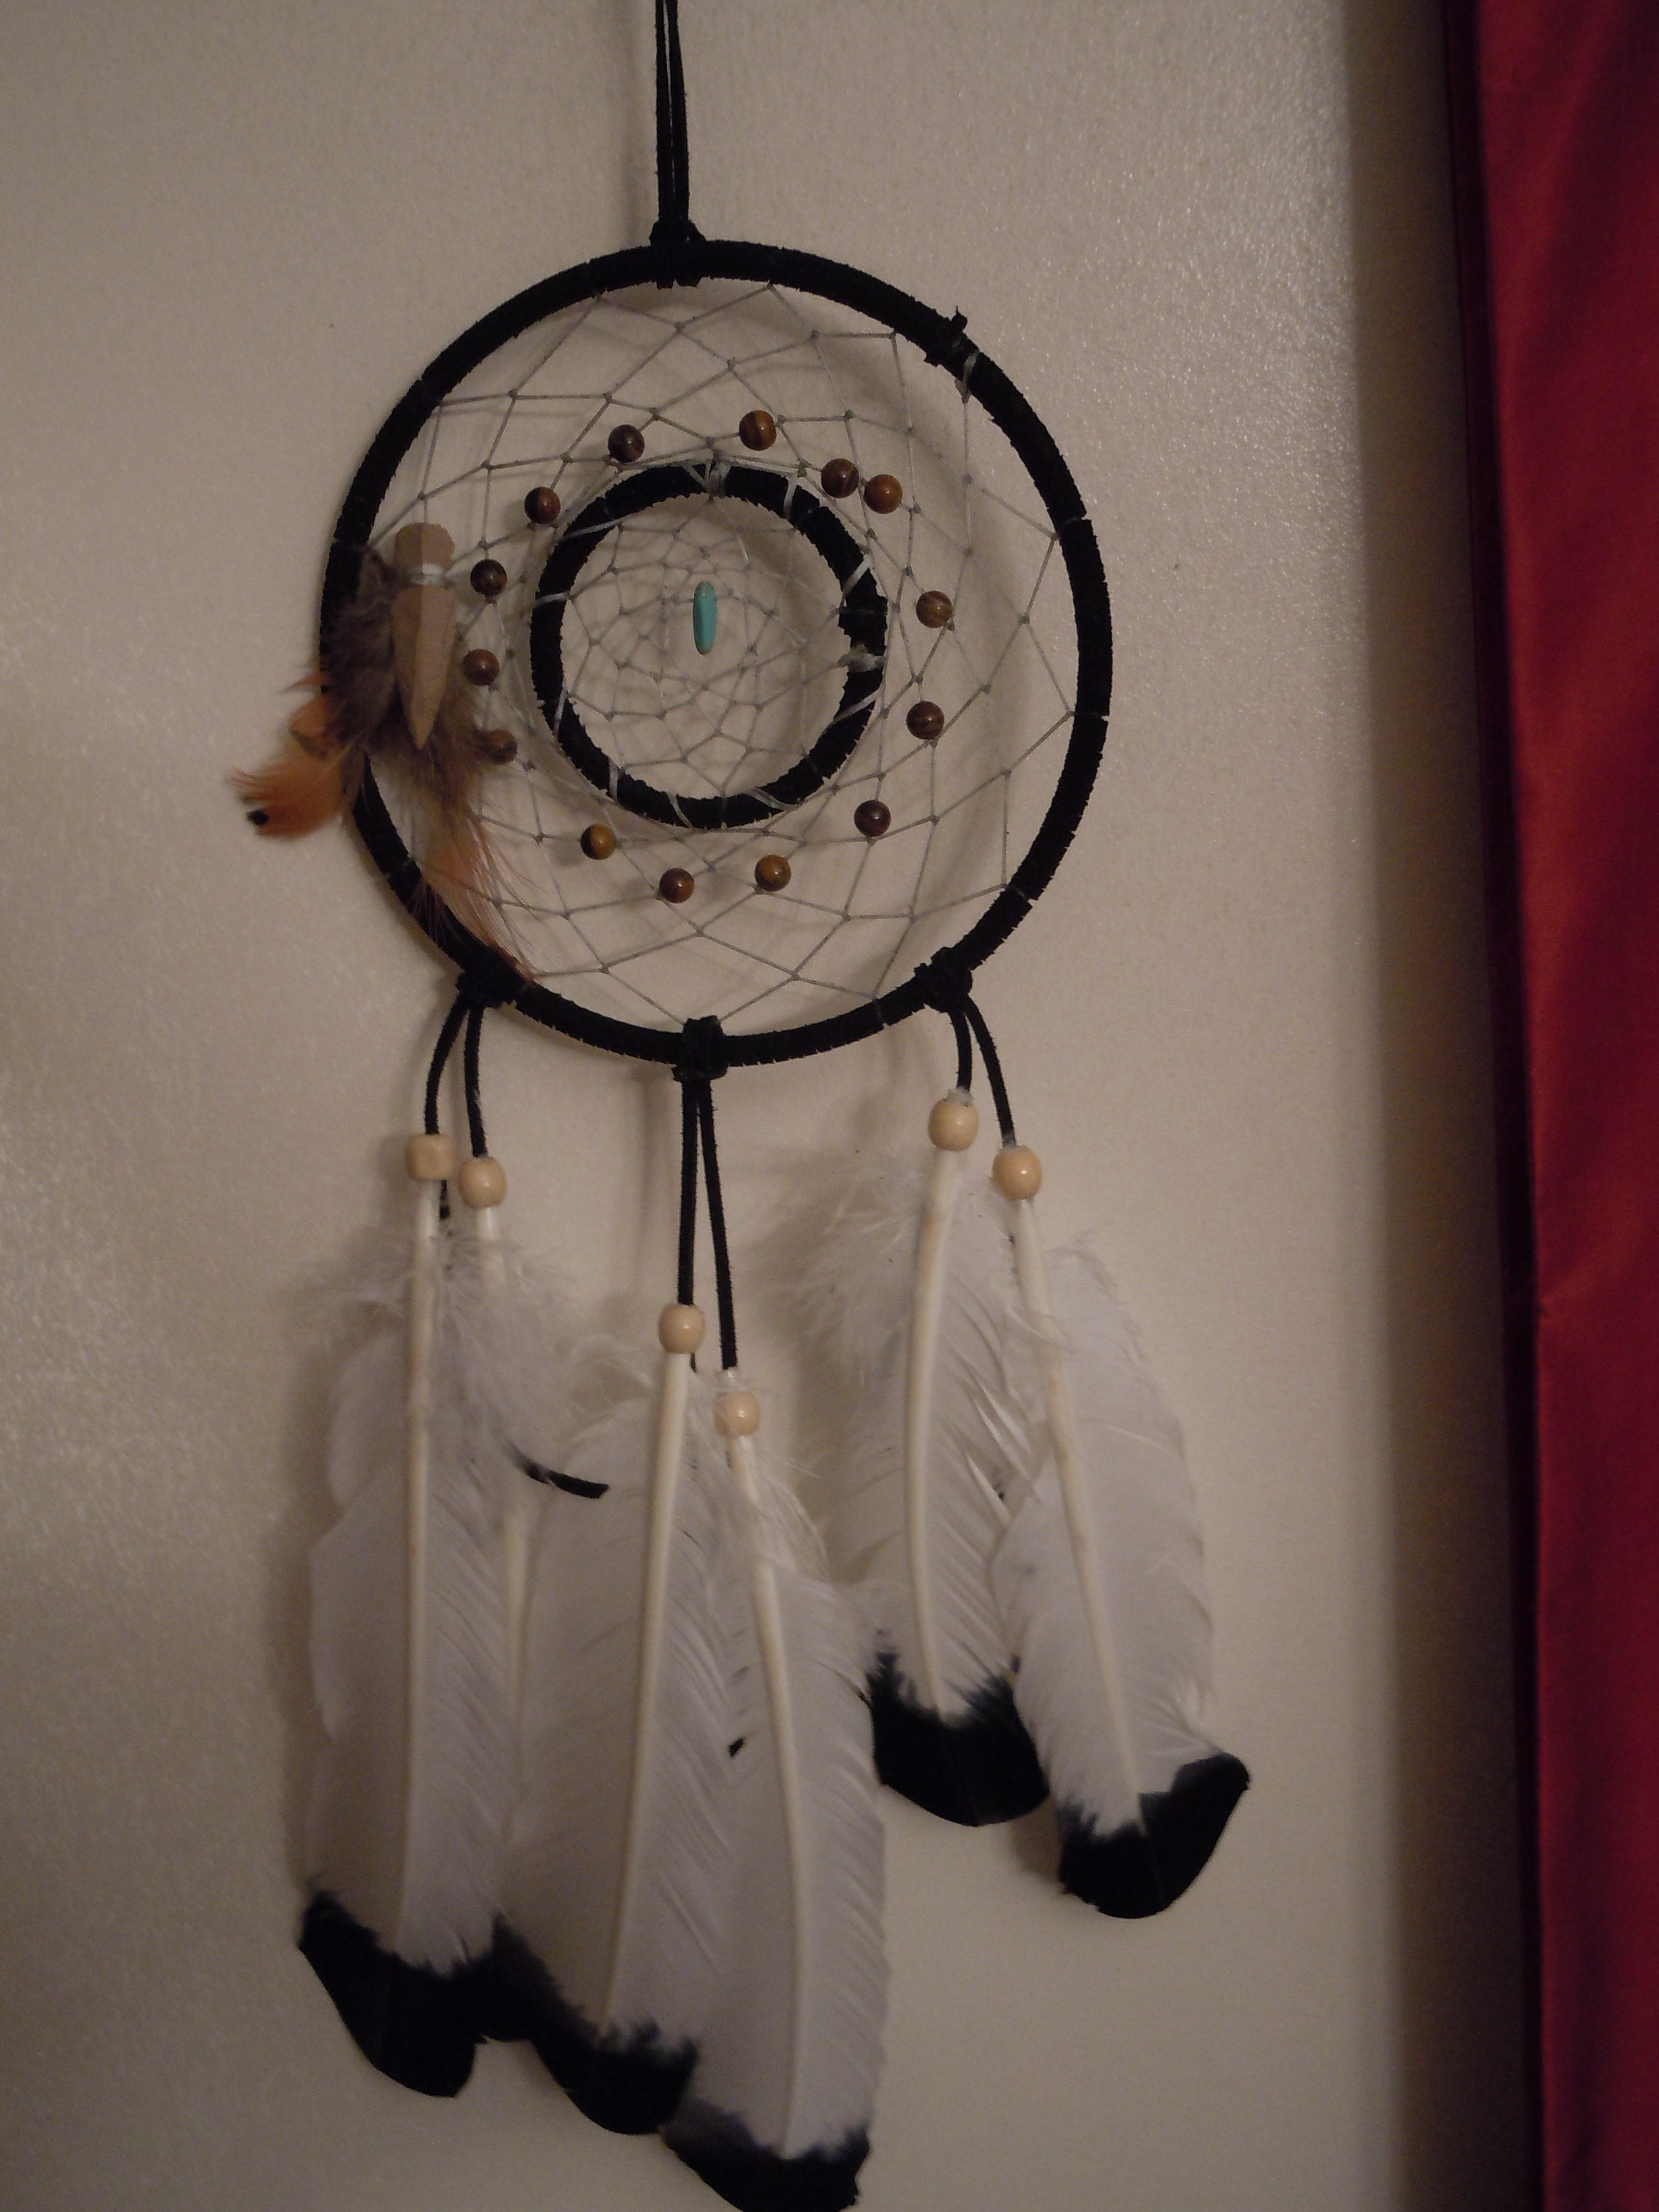 Double ring dream catcher by aj anba17 on deviantart for How to make a double ring dreamcatcher